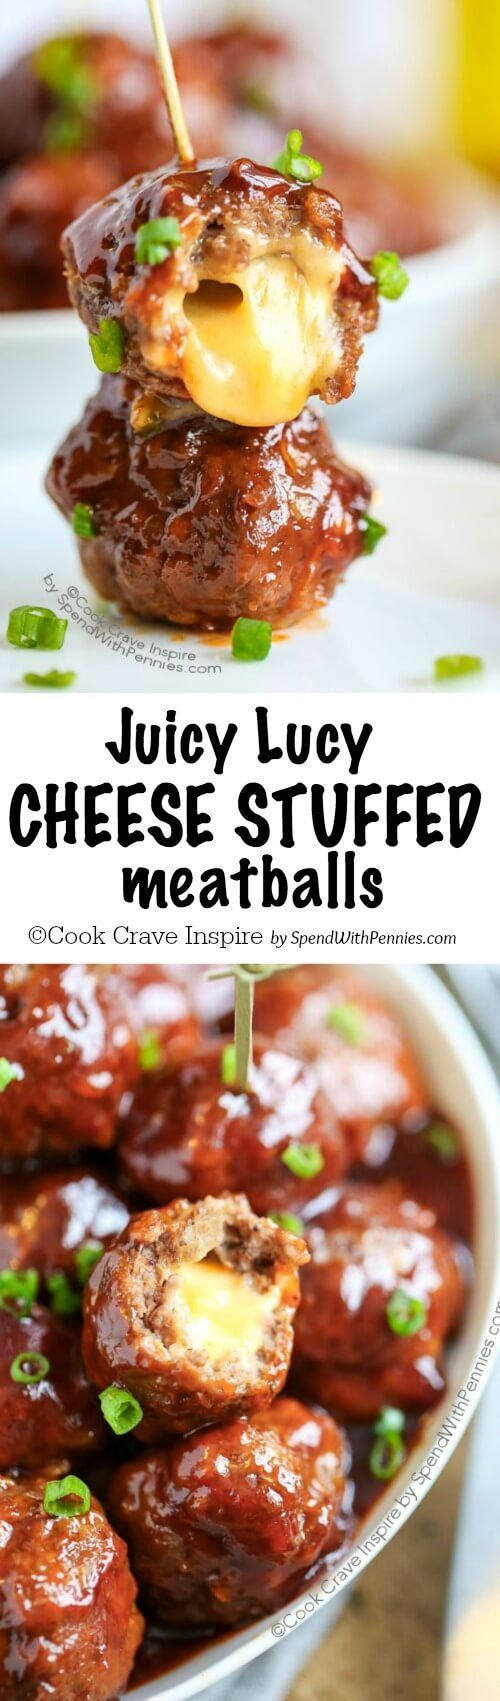 Juicy Lucy meatballs! These are of of my favorite game day appetizers! Gooey cheese is stuffed inside a tender beef meatball and bathed in a spicy sweet sauce!  #dinnerrecipes #partyrecipes